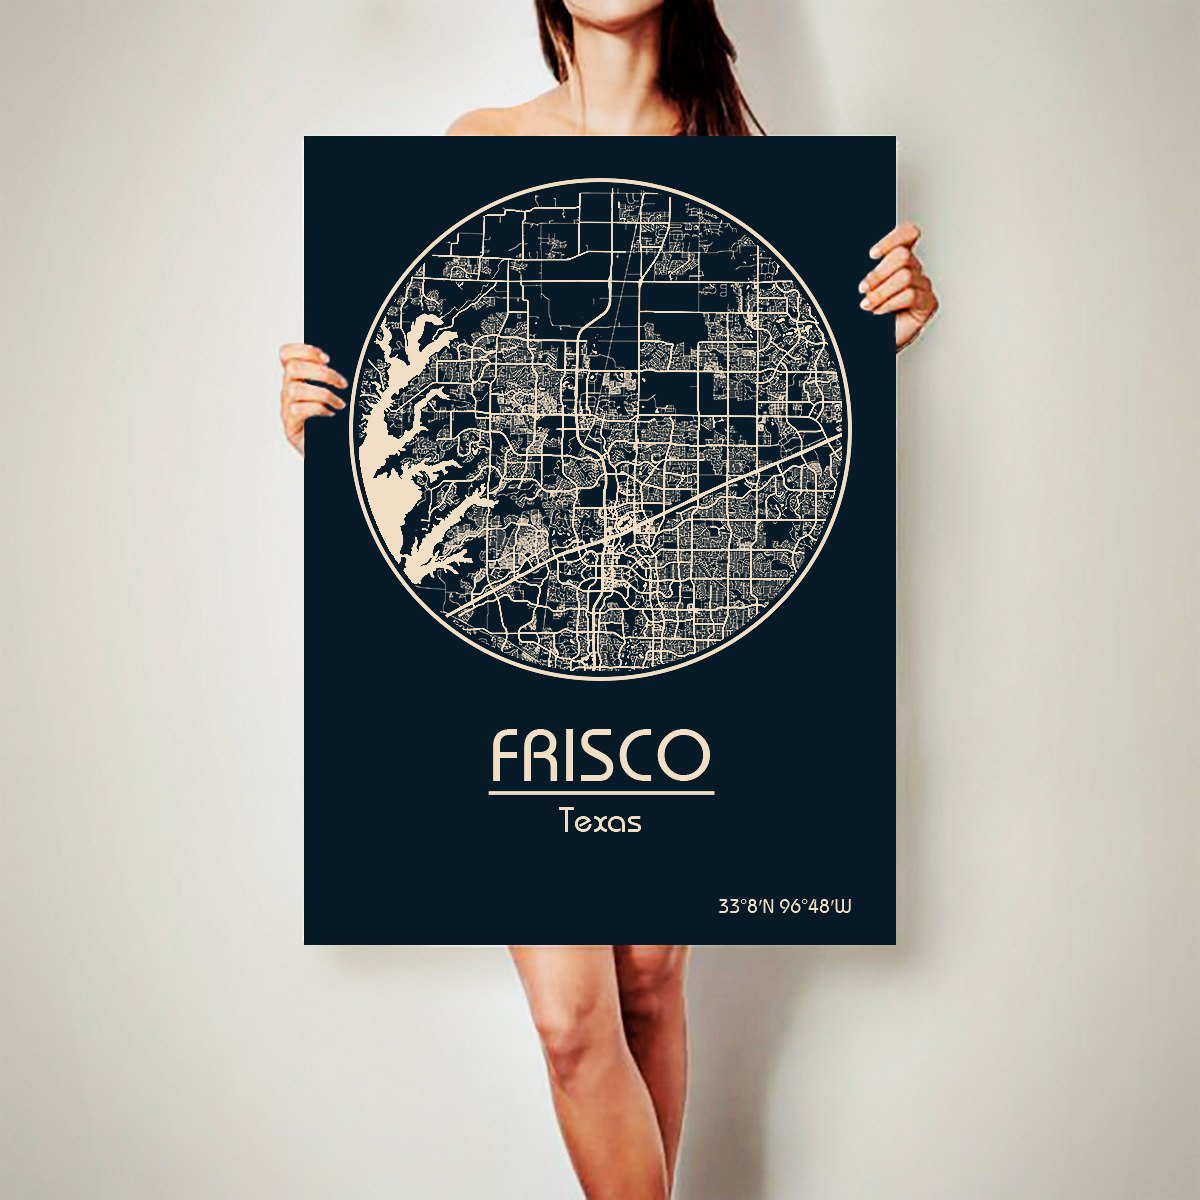 Frisco Texas Canvas Map Frisco Texas Poster City Map Frisco | Etsy - Texas Map Canvas